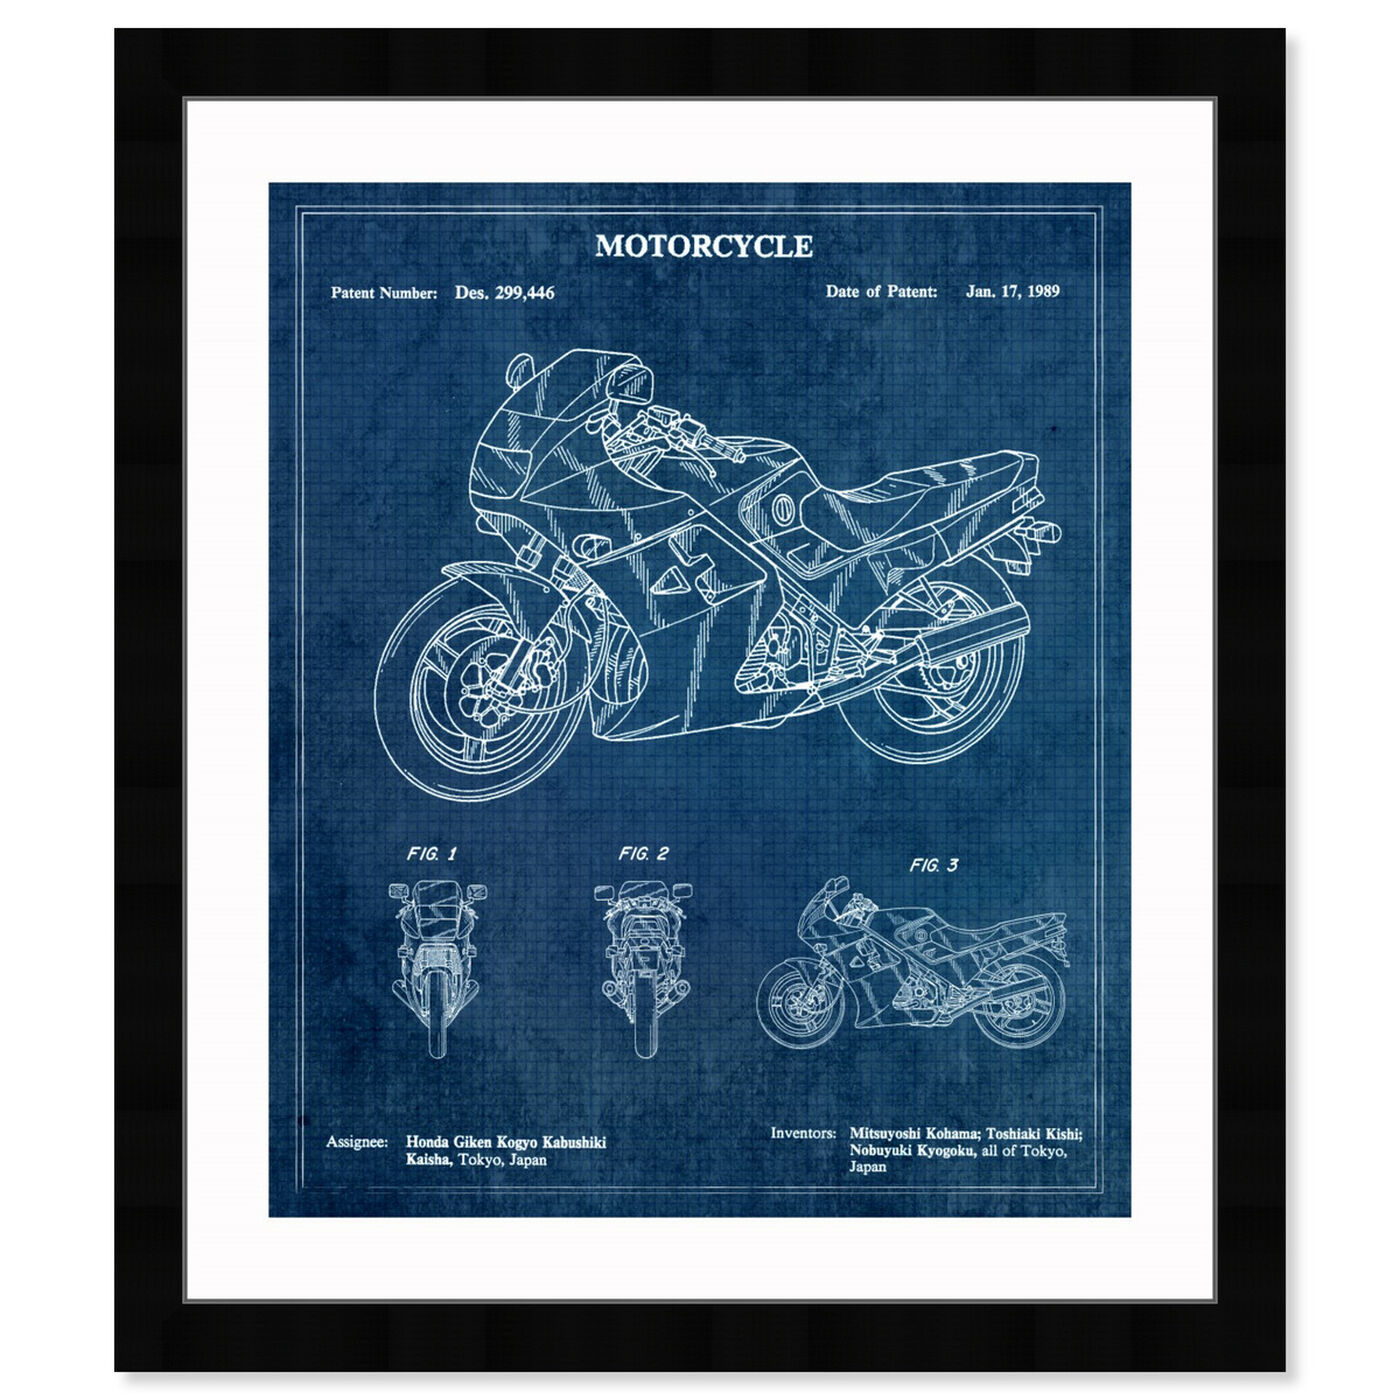 Front view of Motorcycle 1989 featuring transportation and motorcycles art.